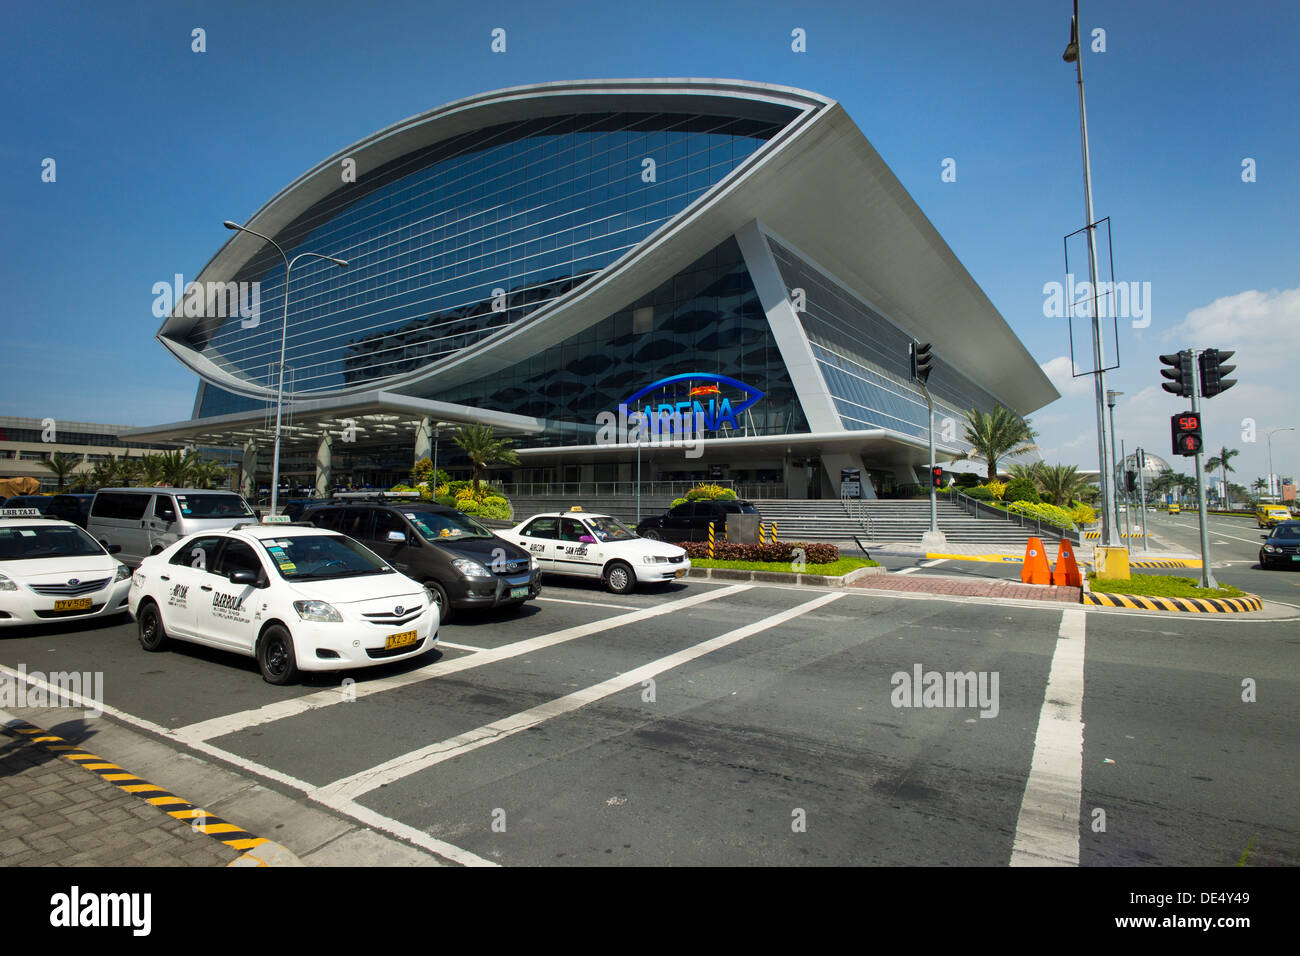 Mall of Asia Arena concert and sports arena, Pasay City, Manila, Philippines, Asia, PublicGround - Stock Image